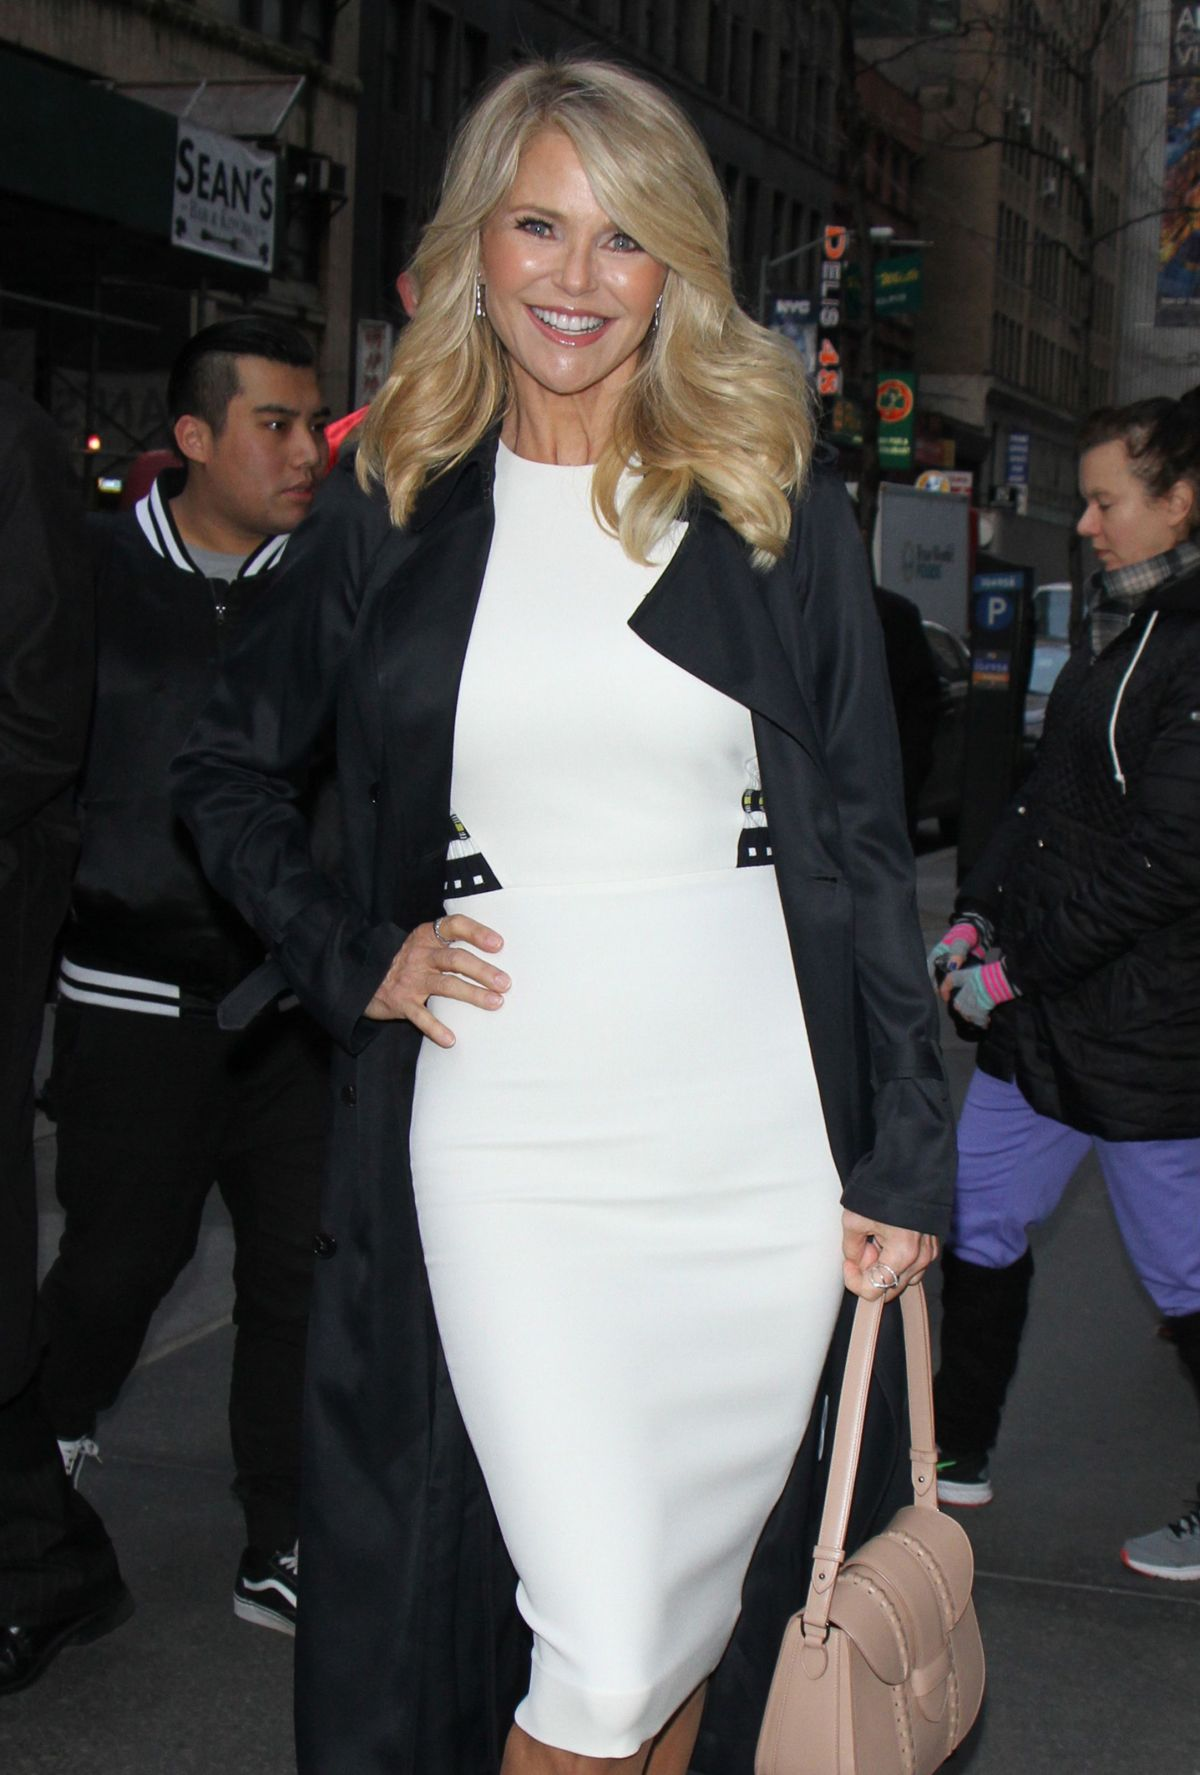 CHRISTIE BRINKLEY at Today Show in New York 02/15/2017